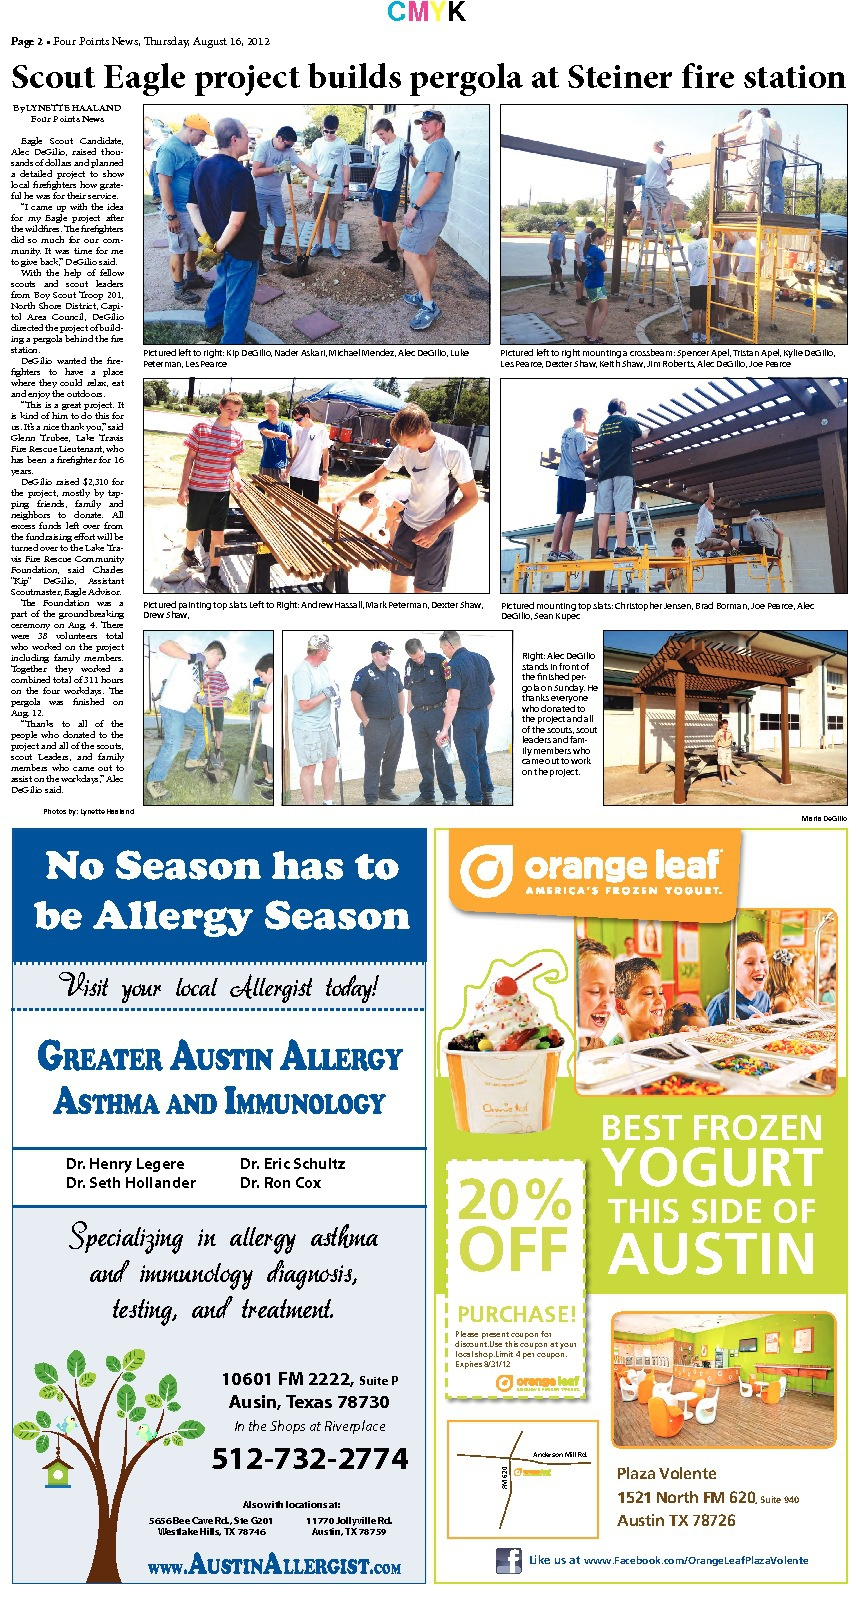 Four Points News August 17, 2012 Issue by Lynette Haaland